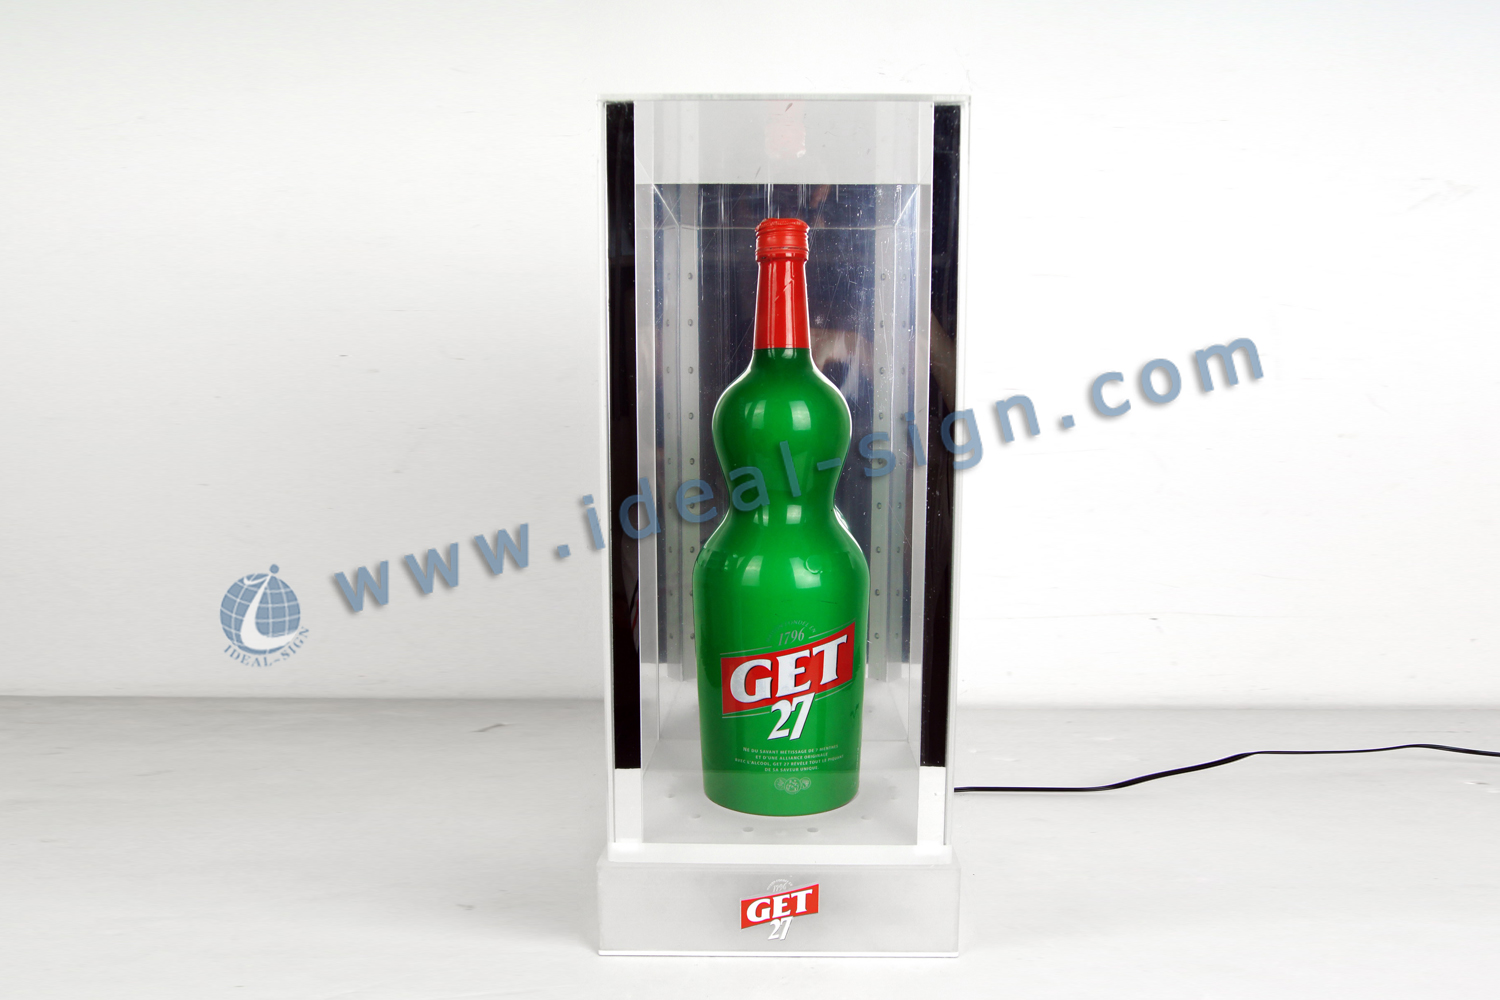 GET27 LED Lighted Liquor Bottle Display